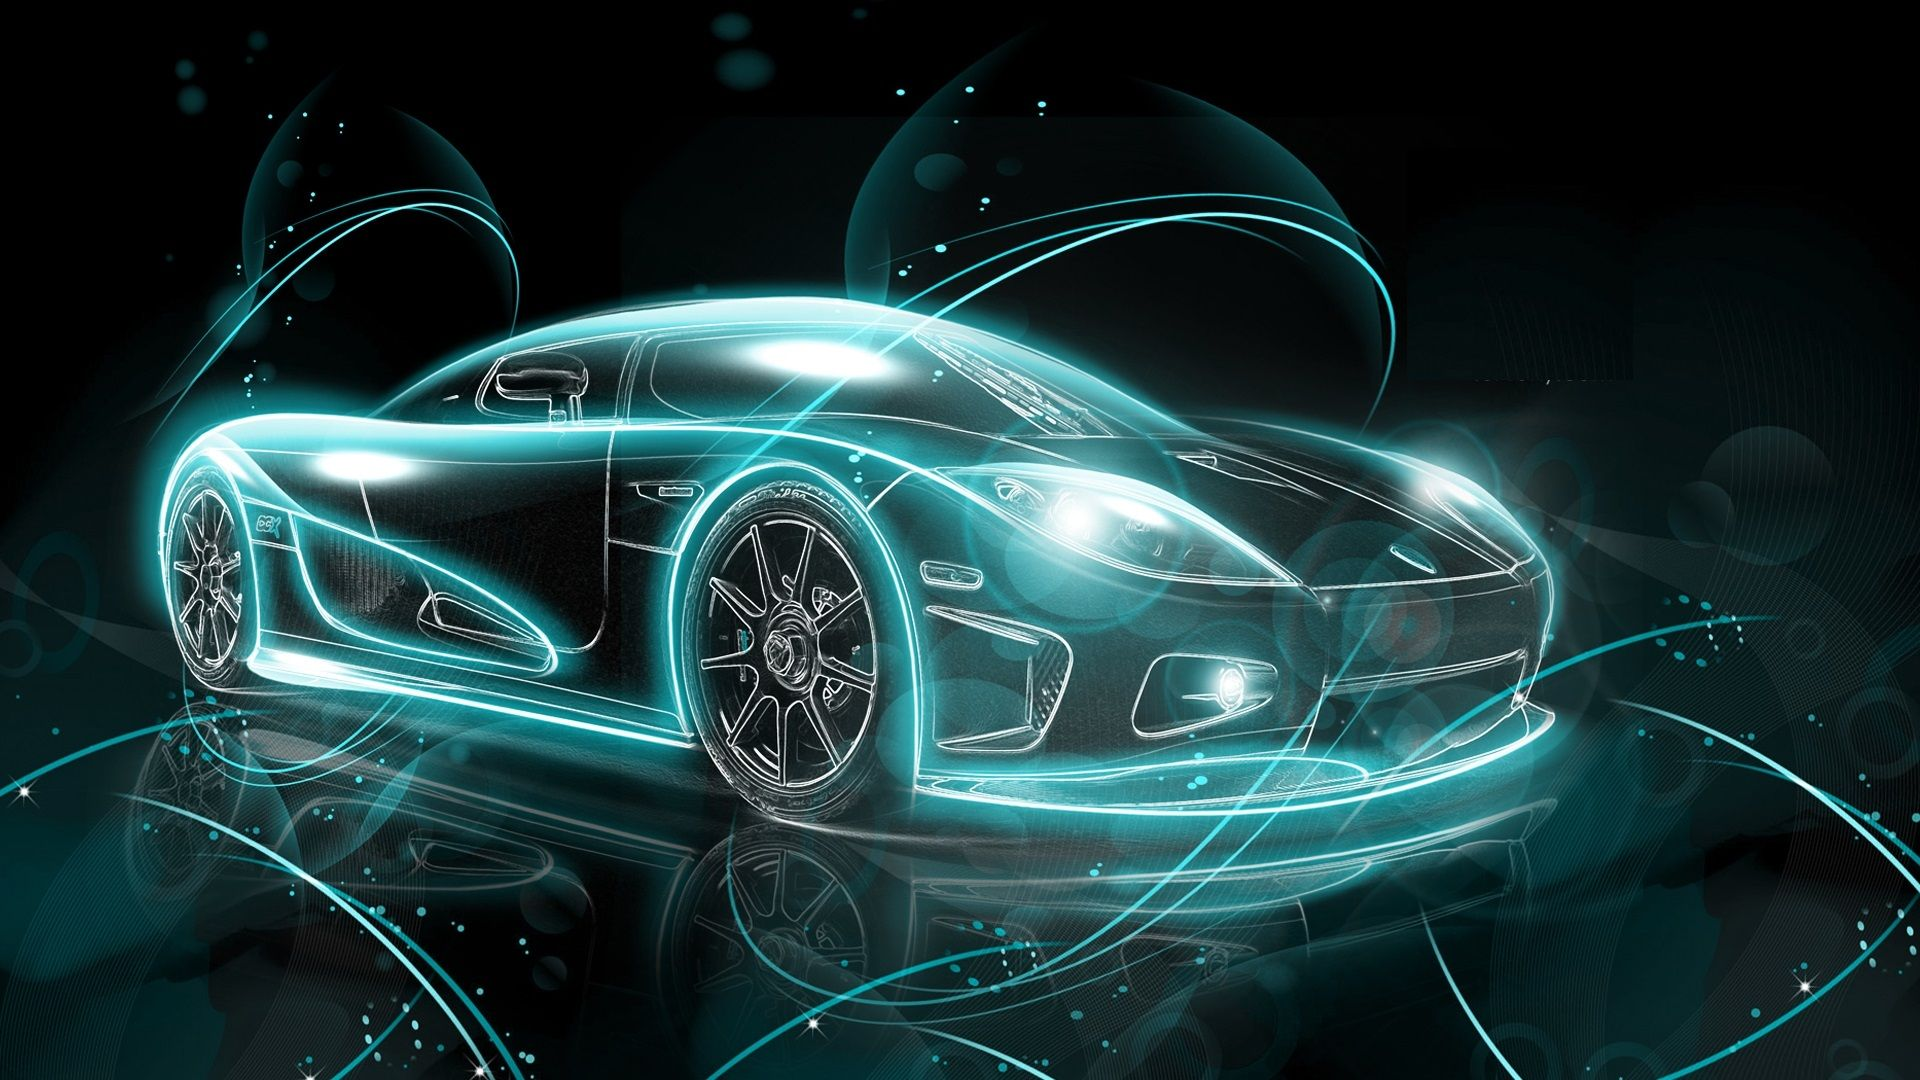 Abstract Sports Car Hd Wallpaper Car Wallpapers Neon Car Car Hd Car Wallpapers